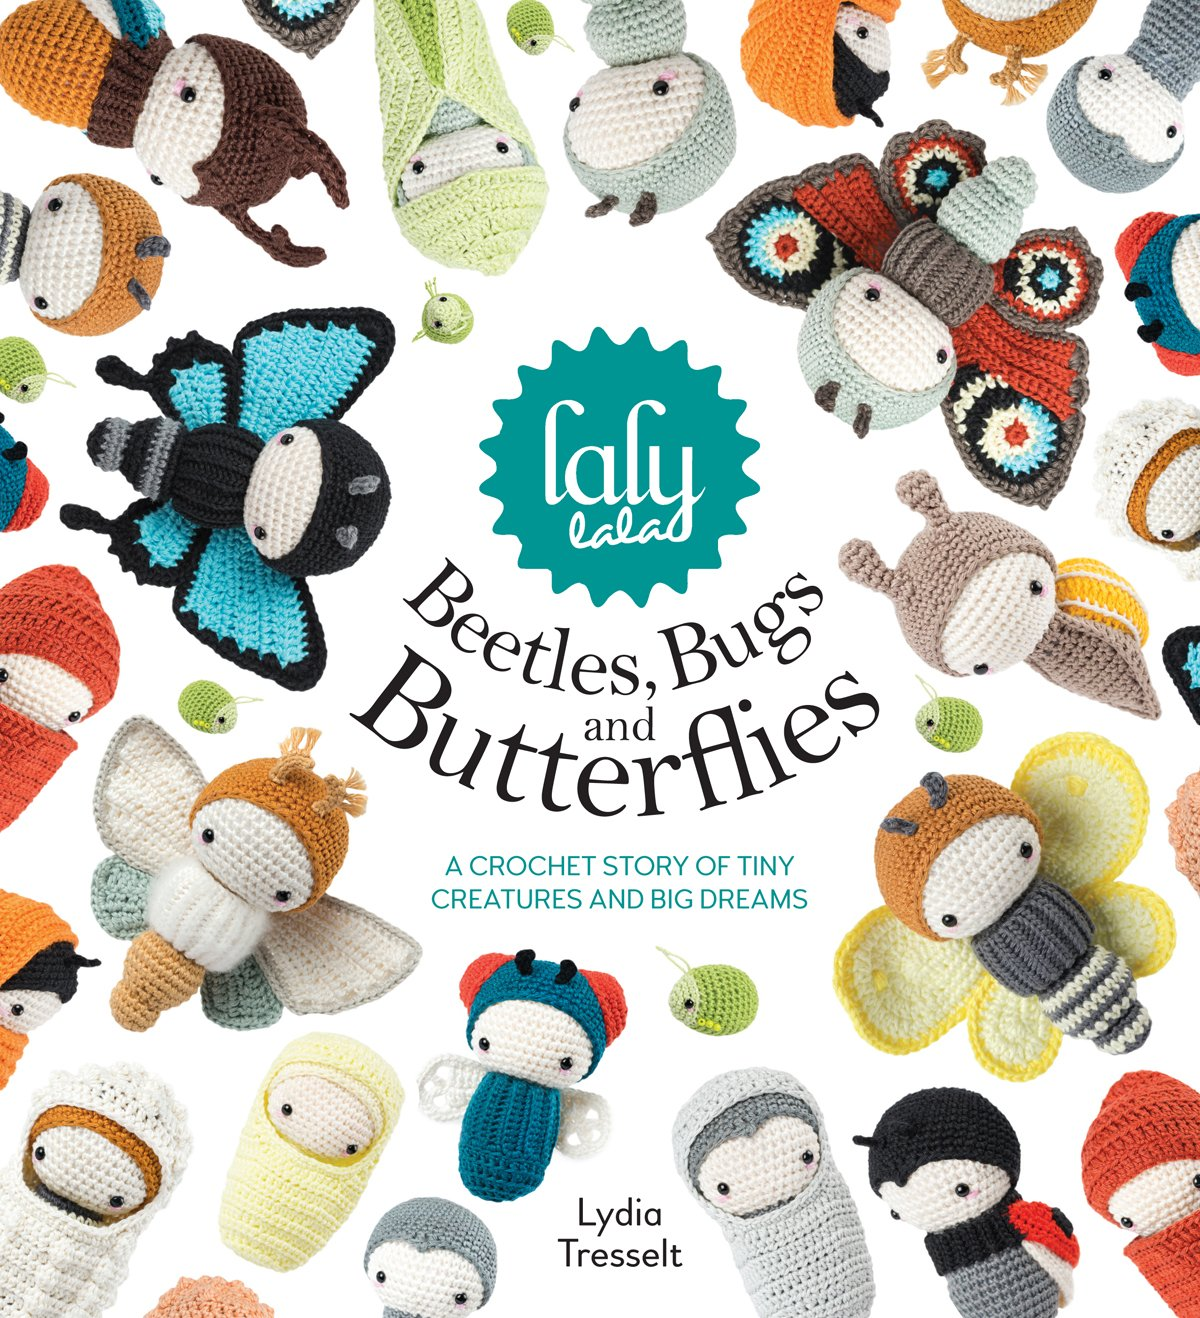 lalylala\'s Beetles, Bugs and Butterflies: A Crochet Story of Tiny ...